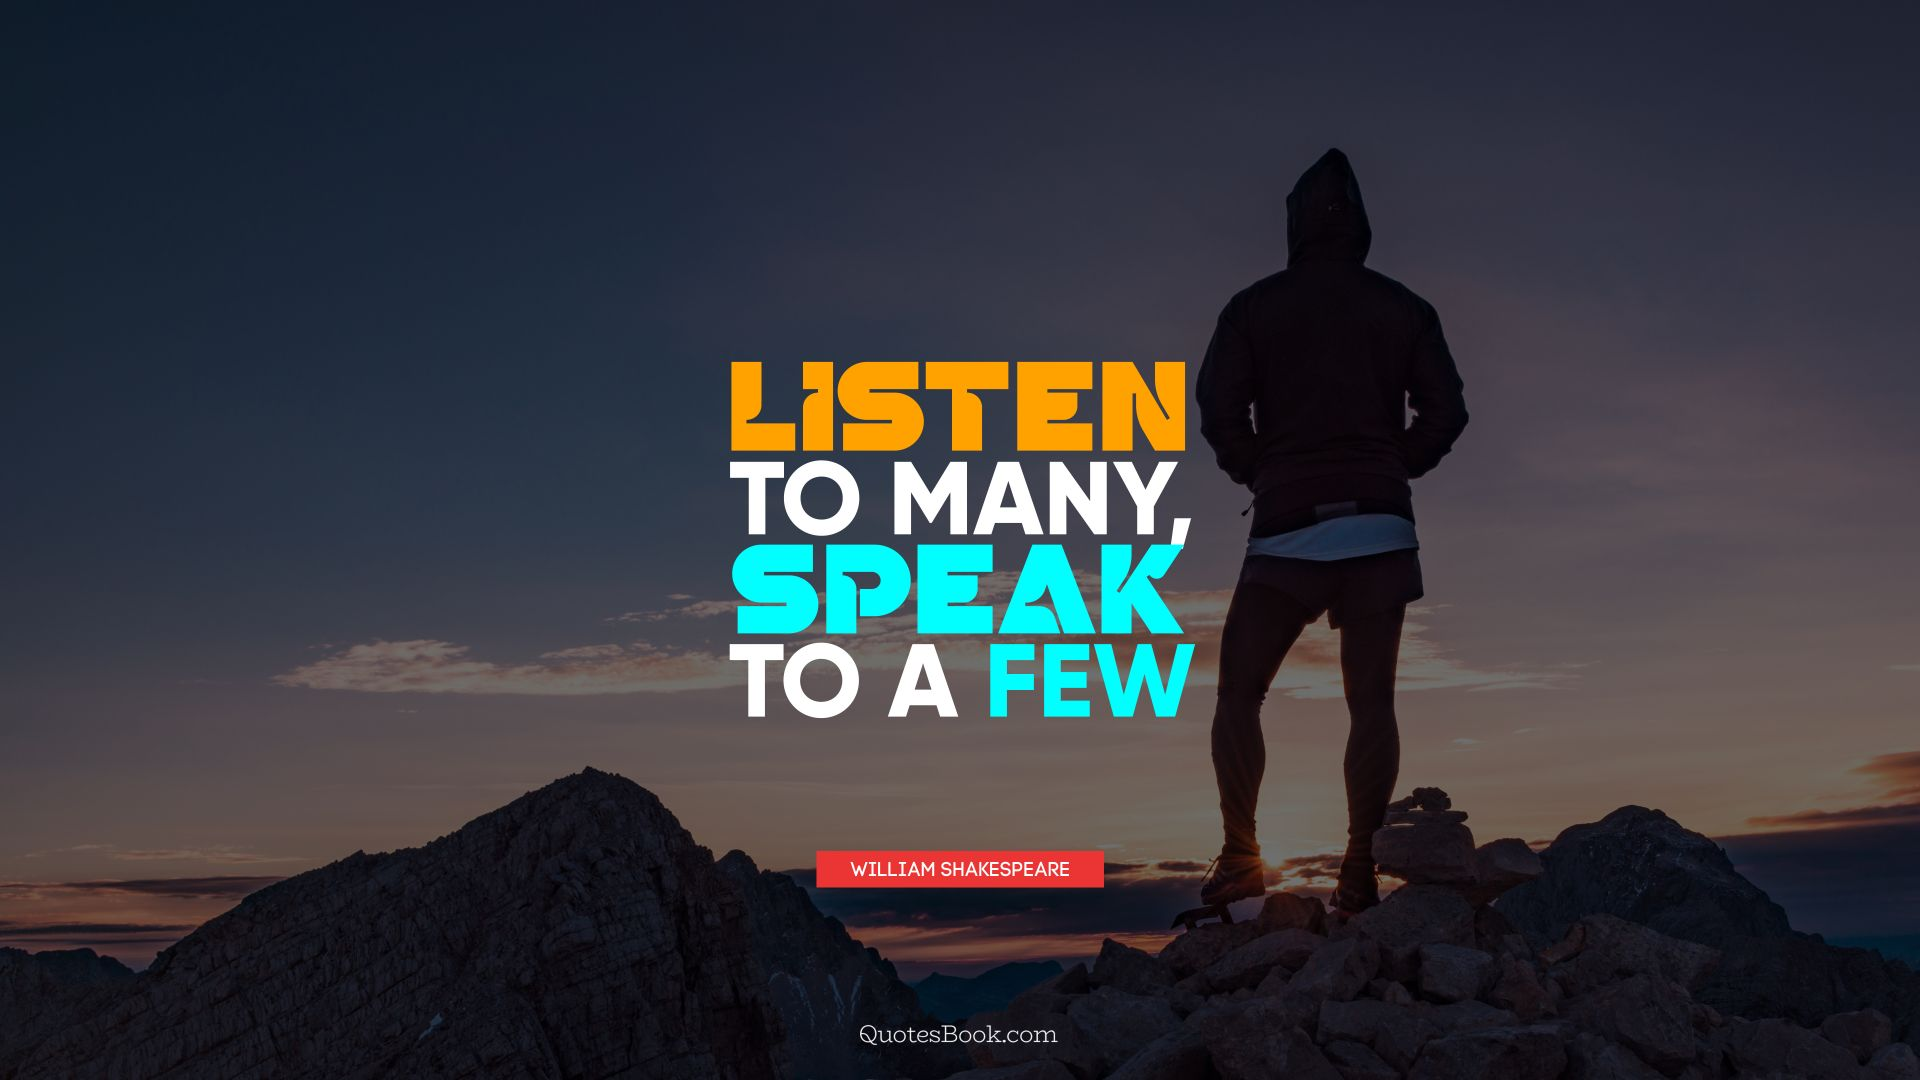 Listen to many, speak to a few. - Quote by William Shakespeare